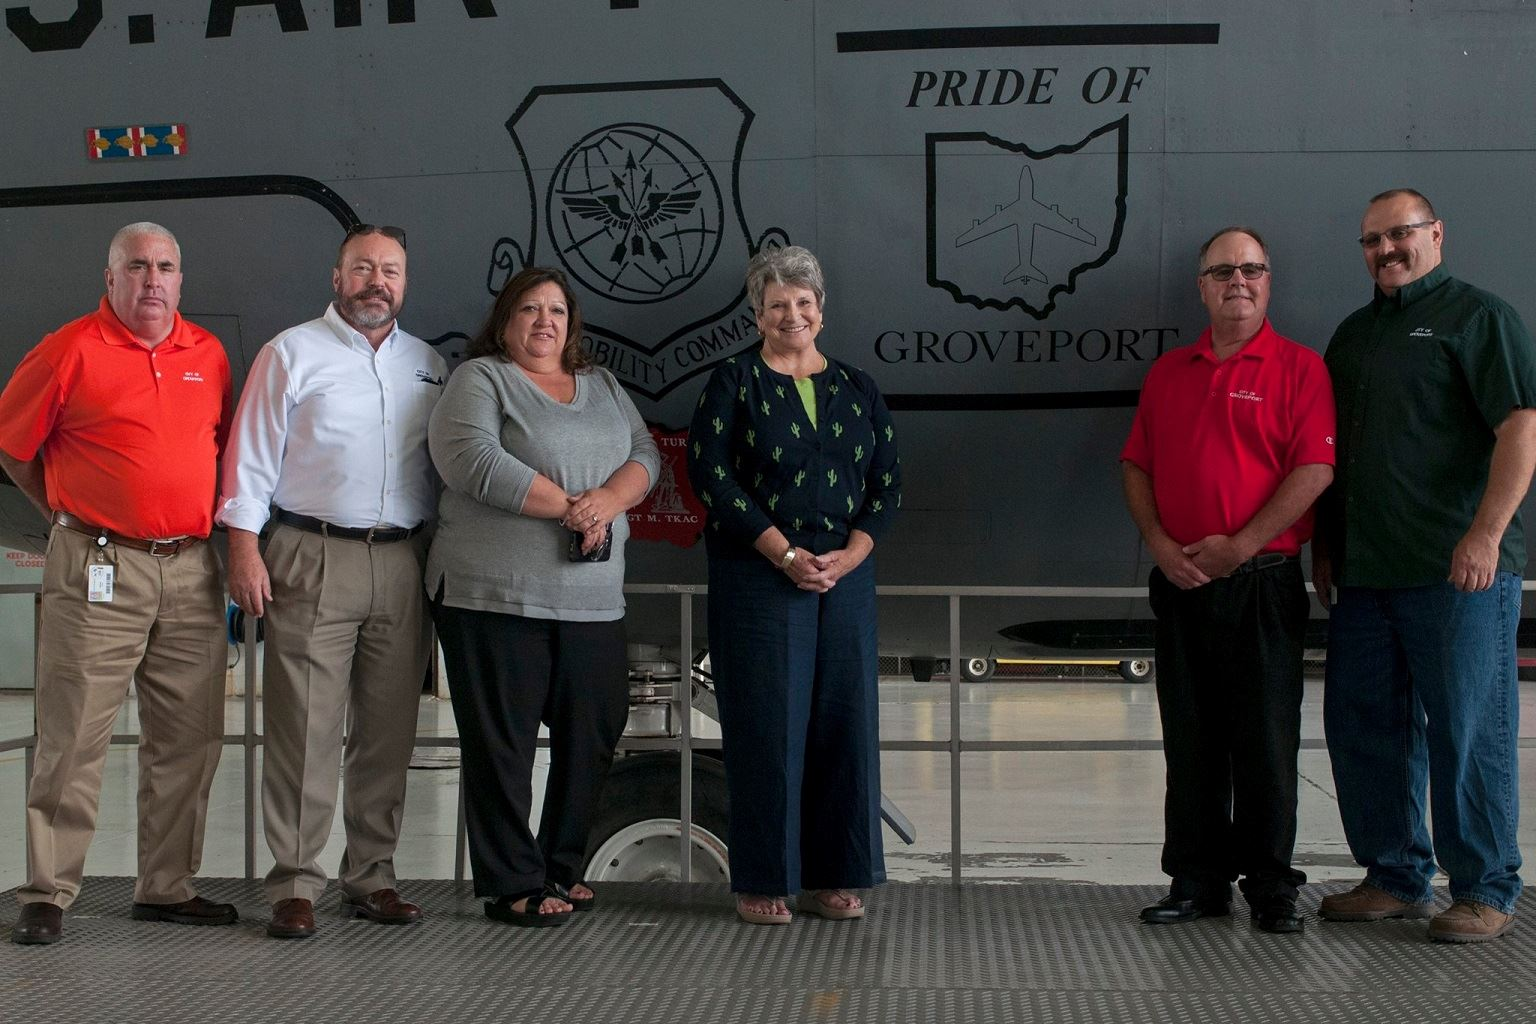 Unveiling ceremony of the dedication of a KC135 Stratotanker designated as the {Pride of Groveport}